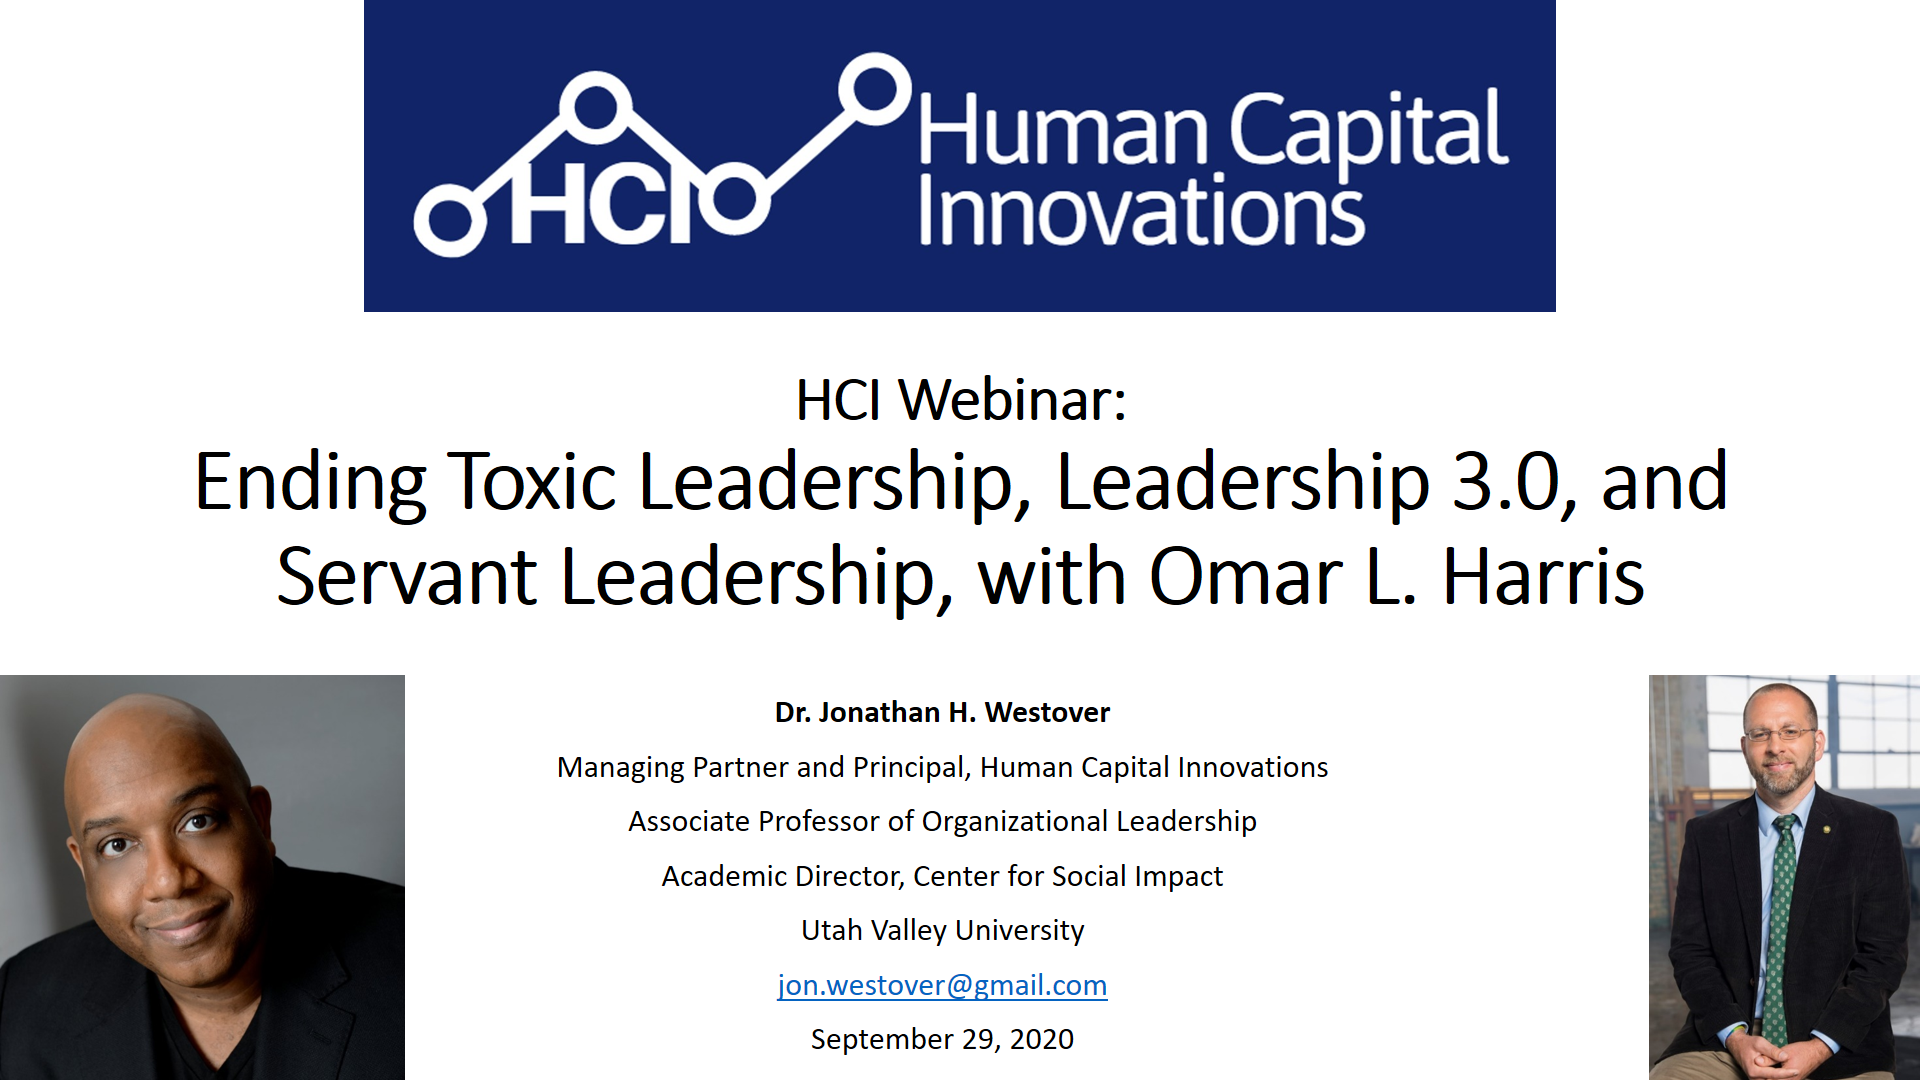 Ending Toxic Leadership, Leadership 3.0, and Servant Leadership